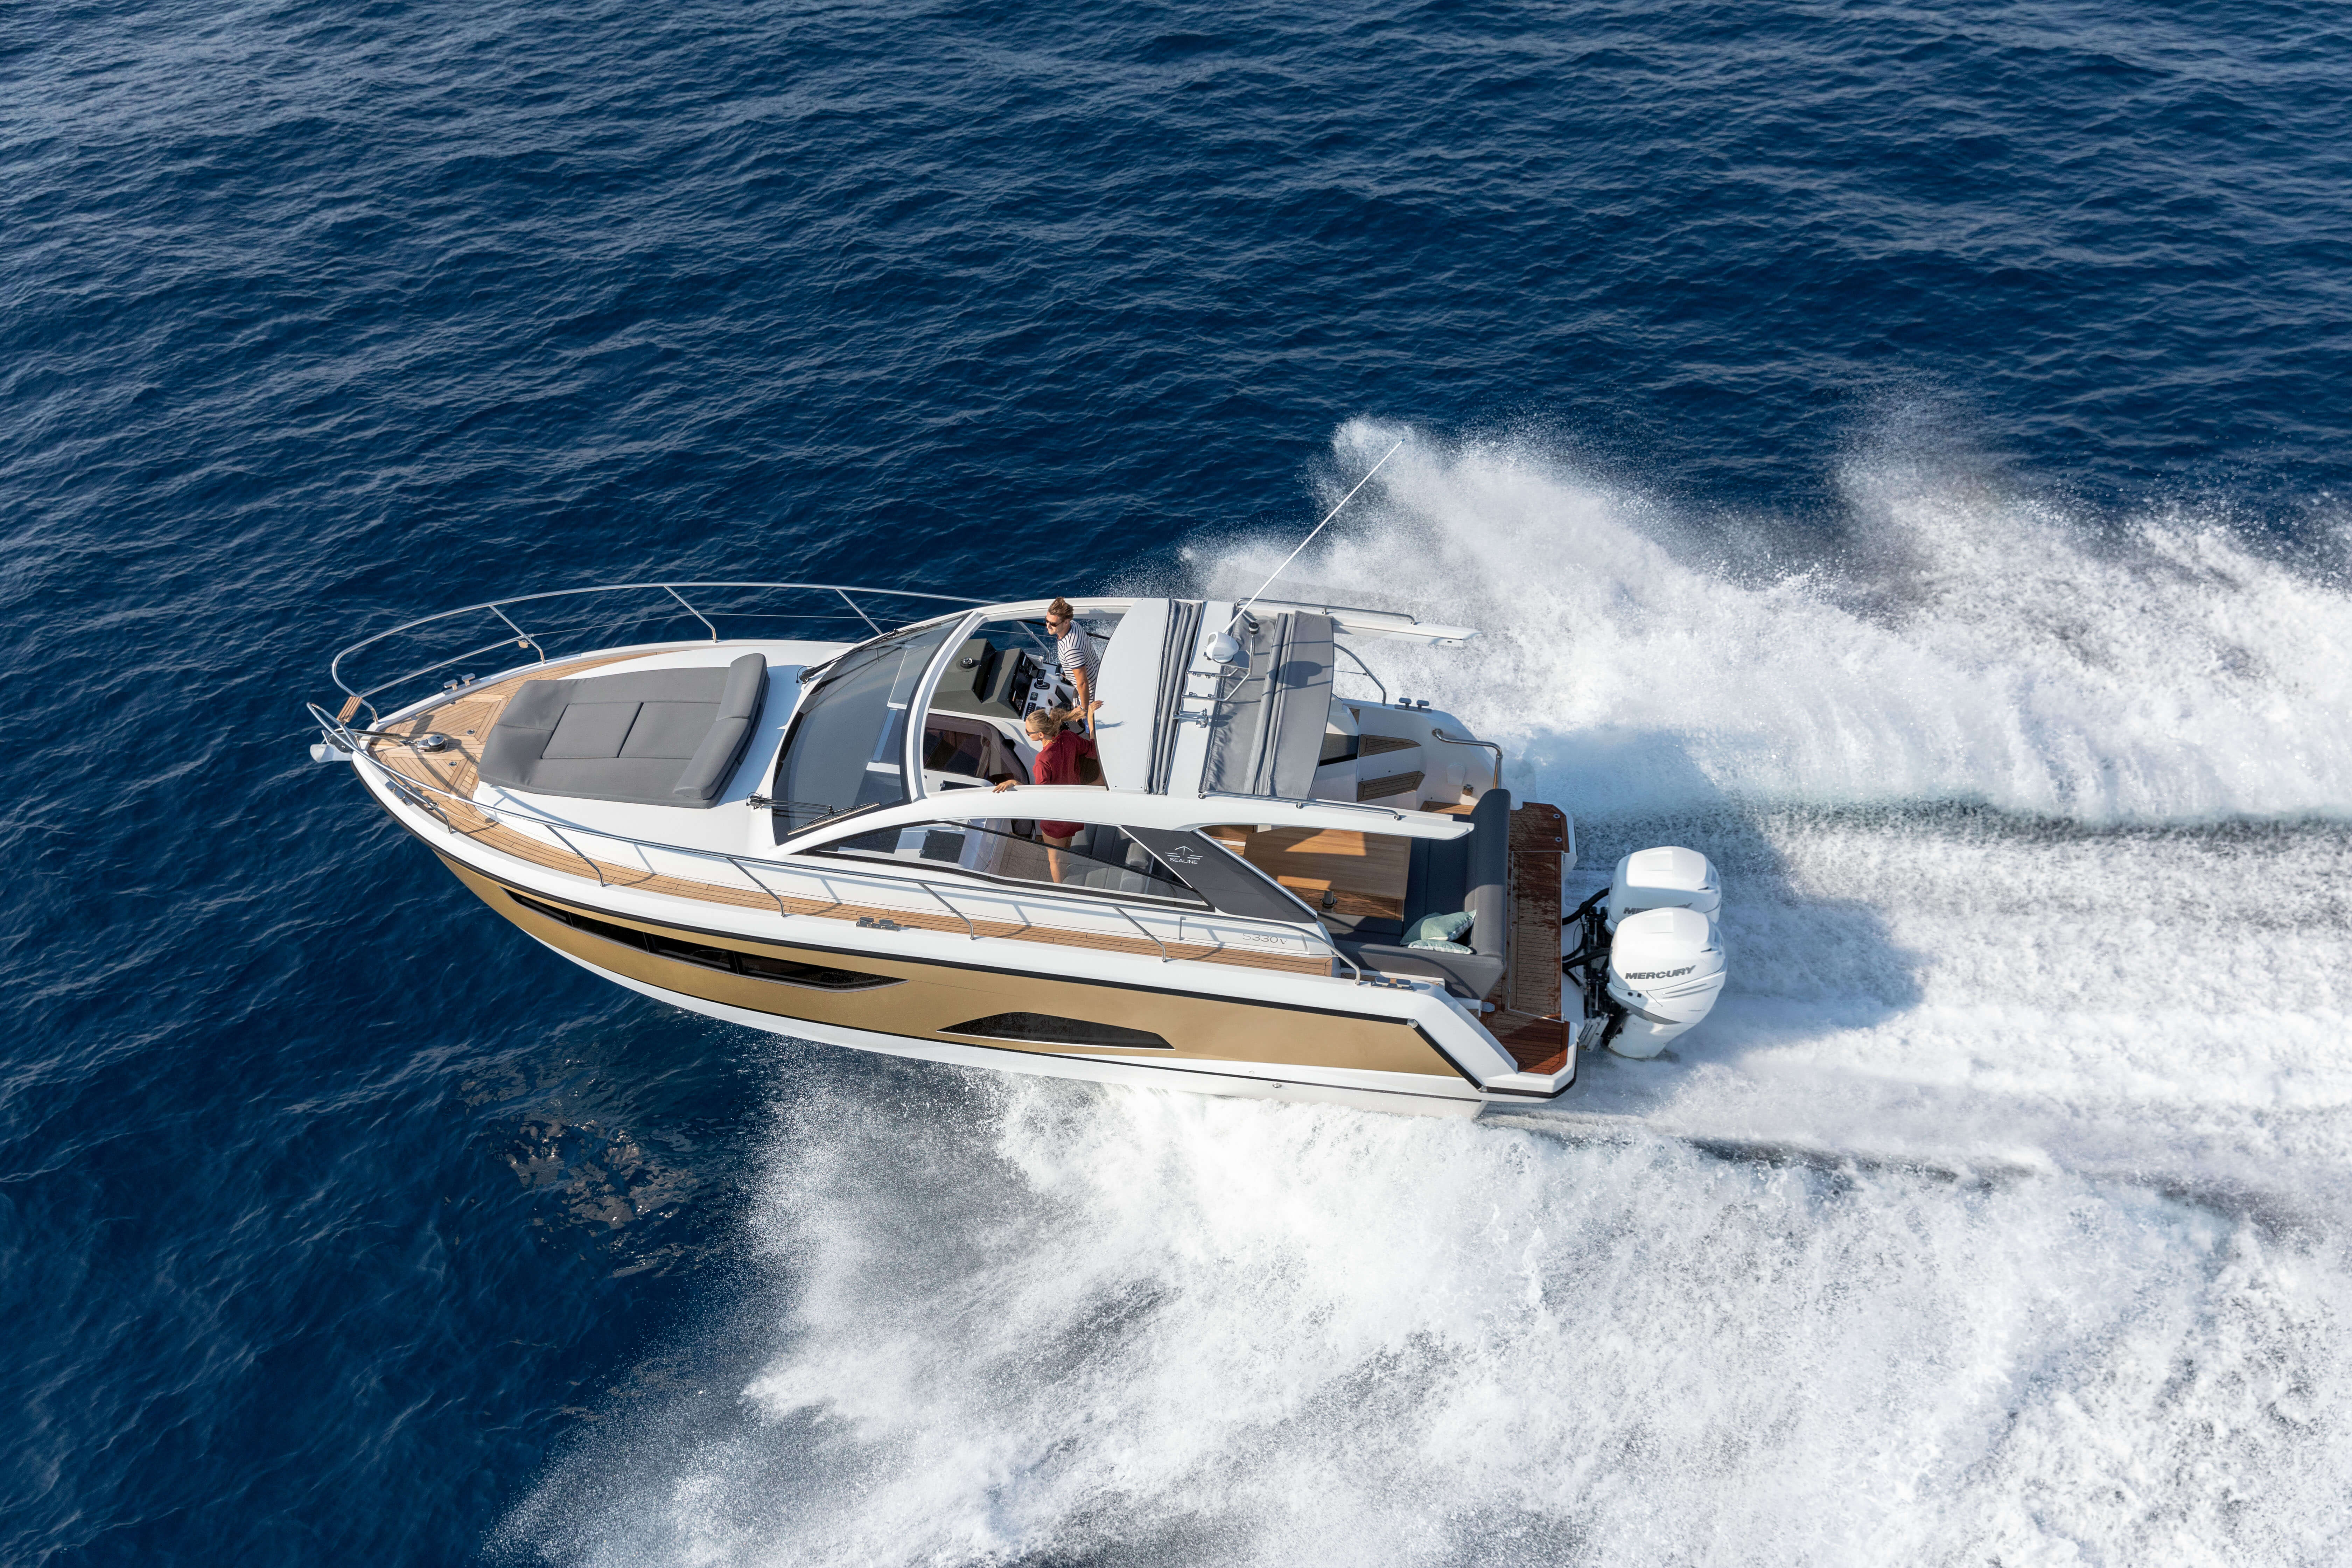 Sealine S330V extérieur | Two fun-todrive outboards make driving the C330v spontaneous and entertaining. | Sealine